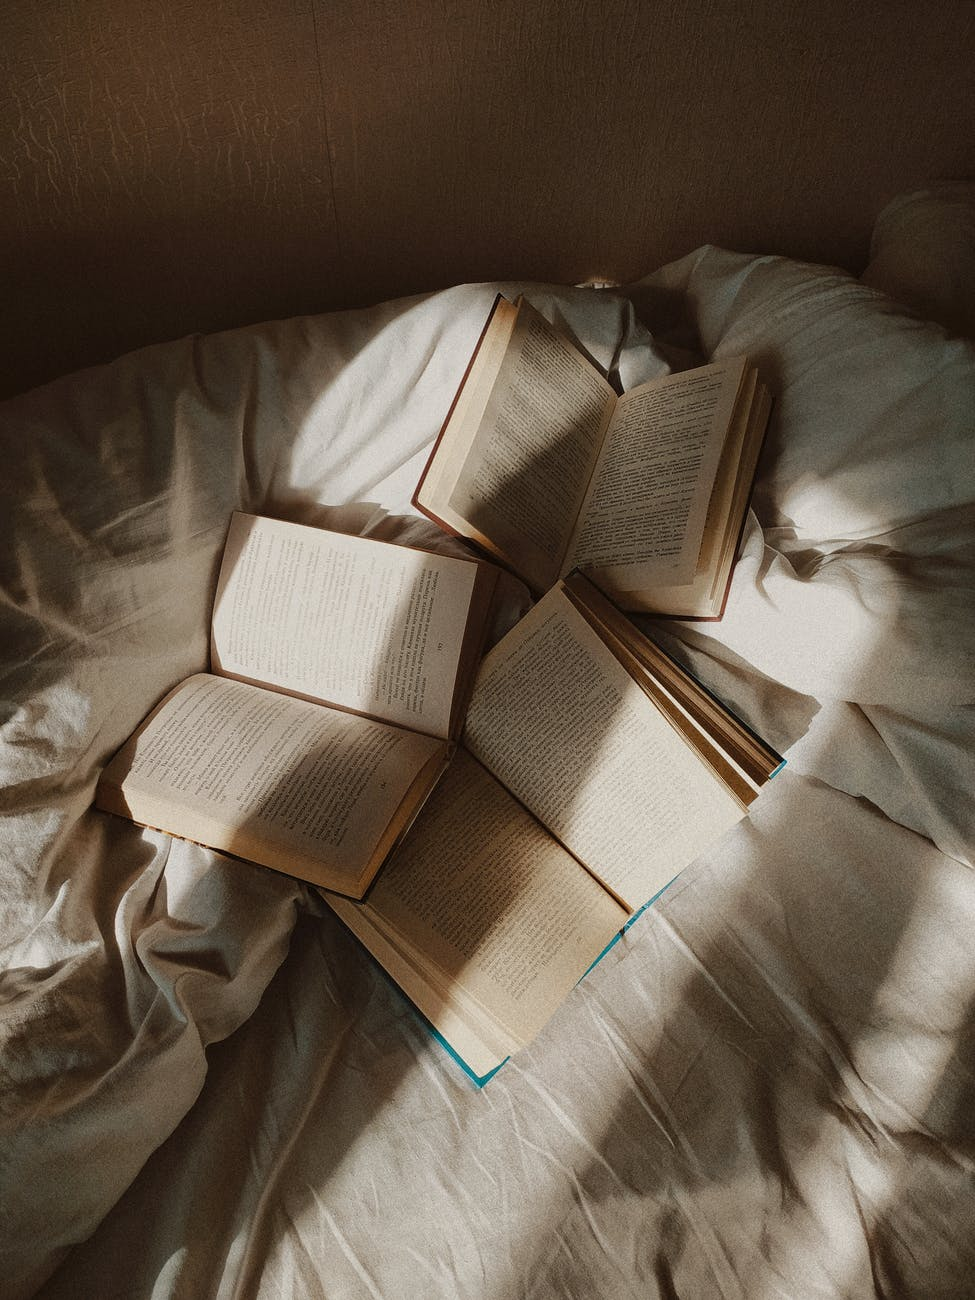 Opened books placed on disheveled bed.